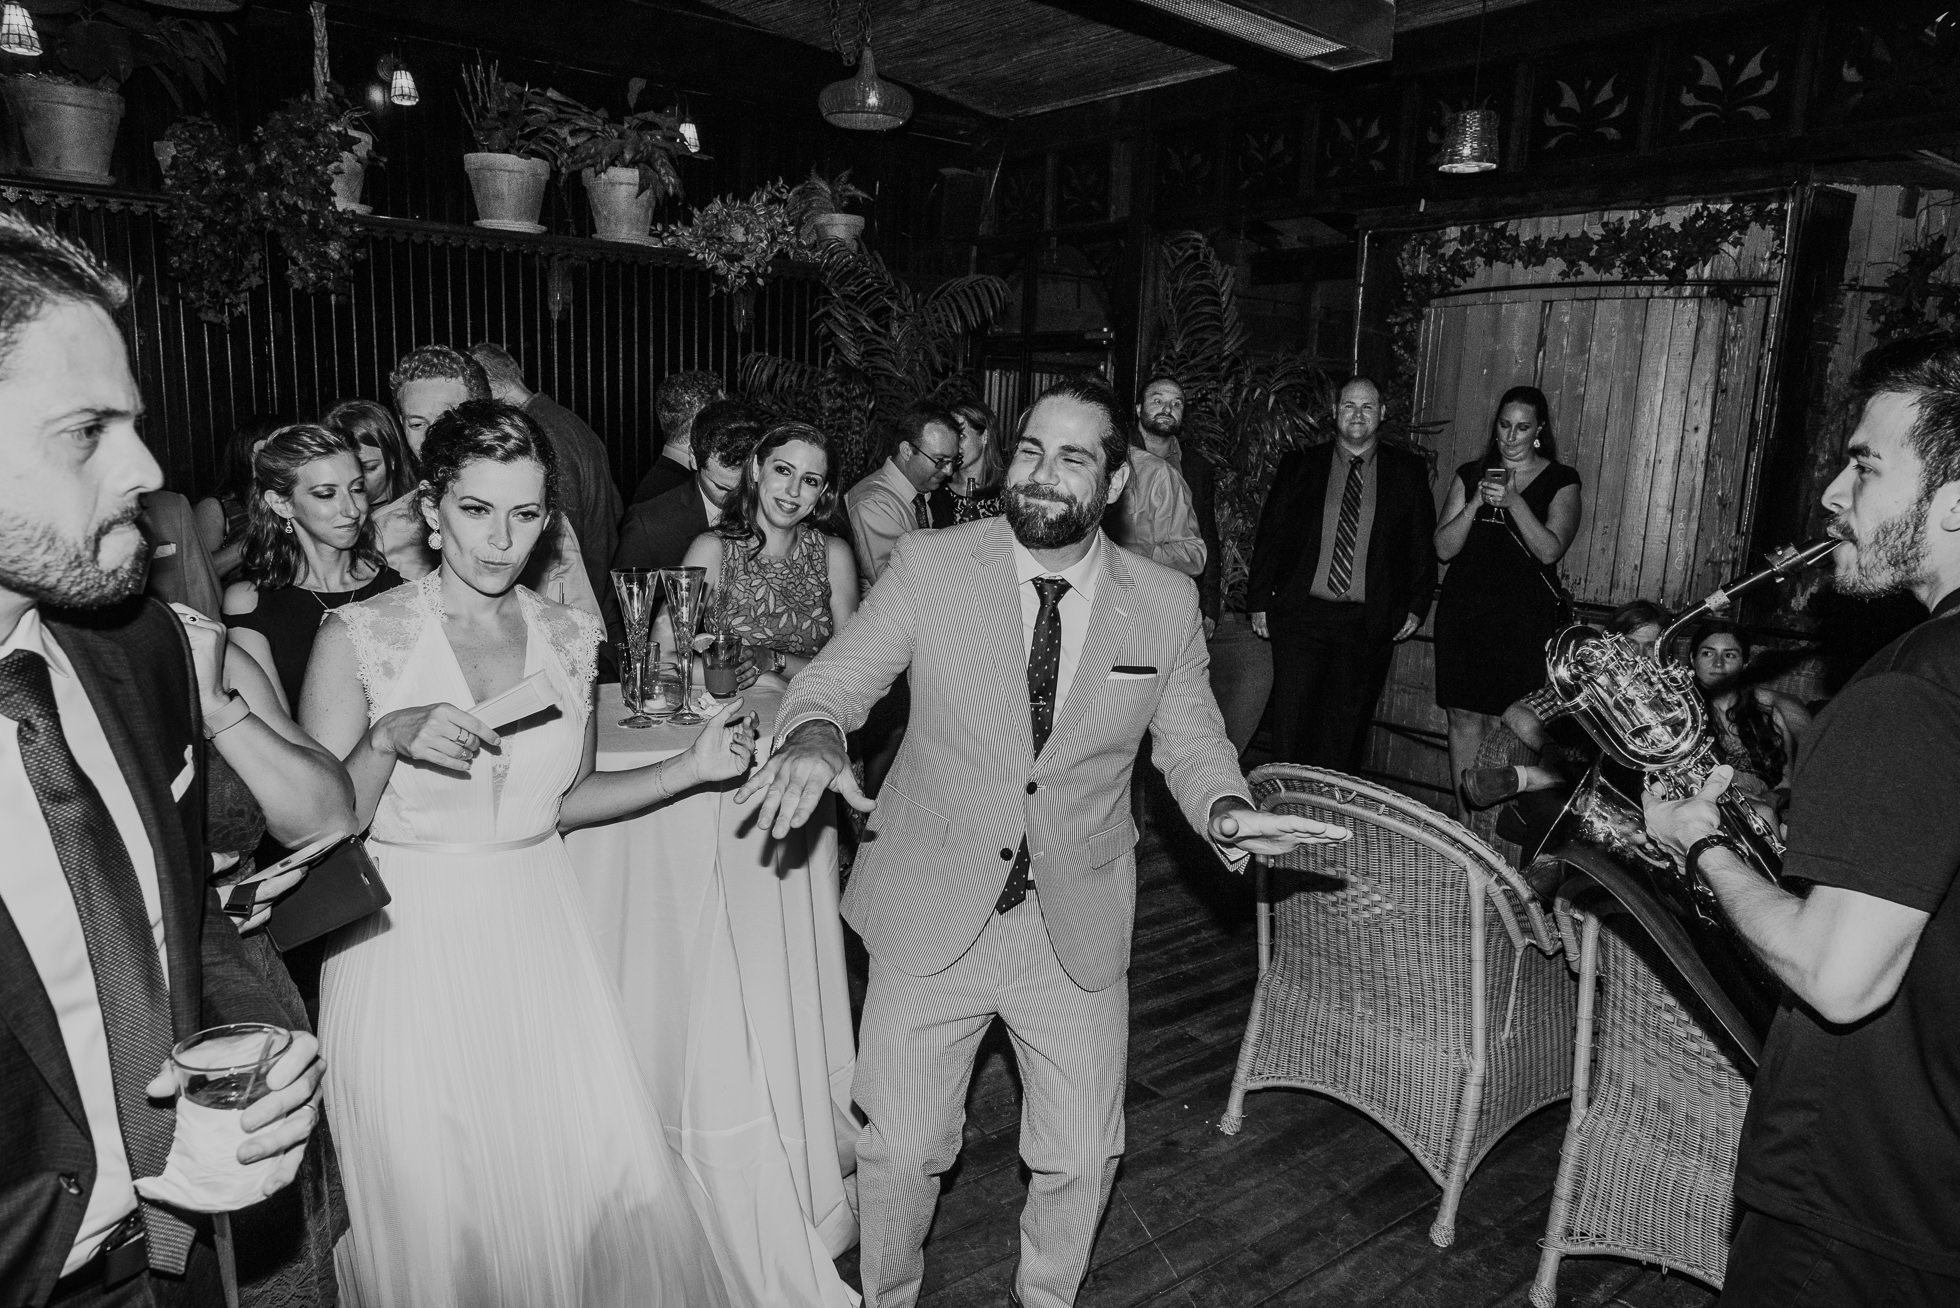 dancing wedding guests